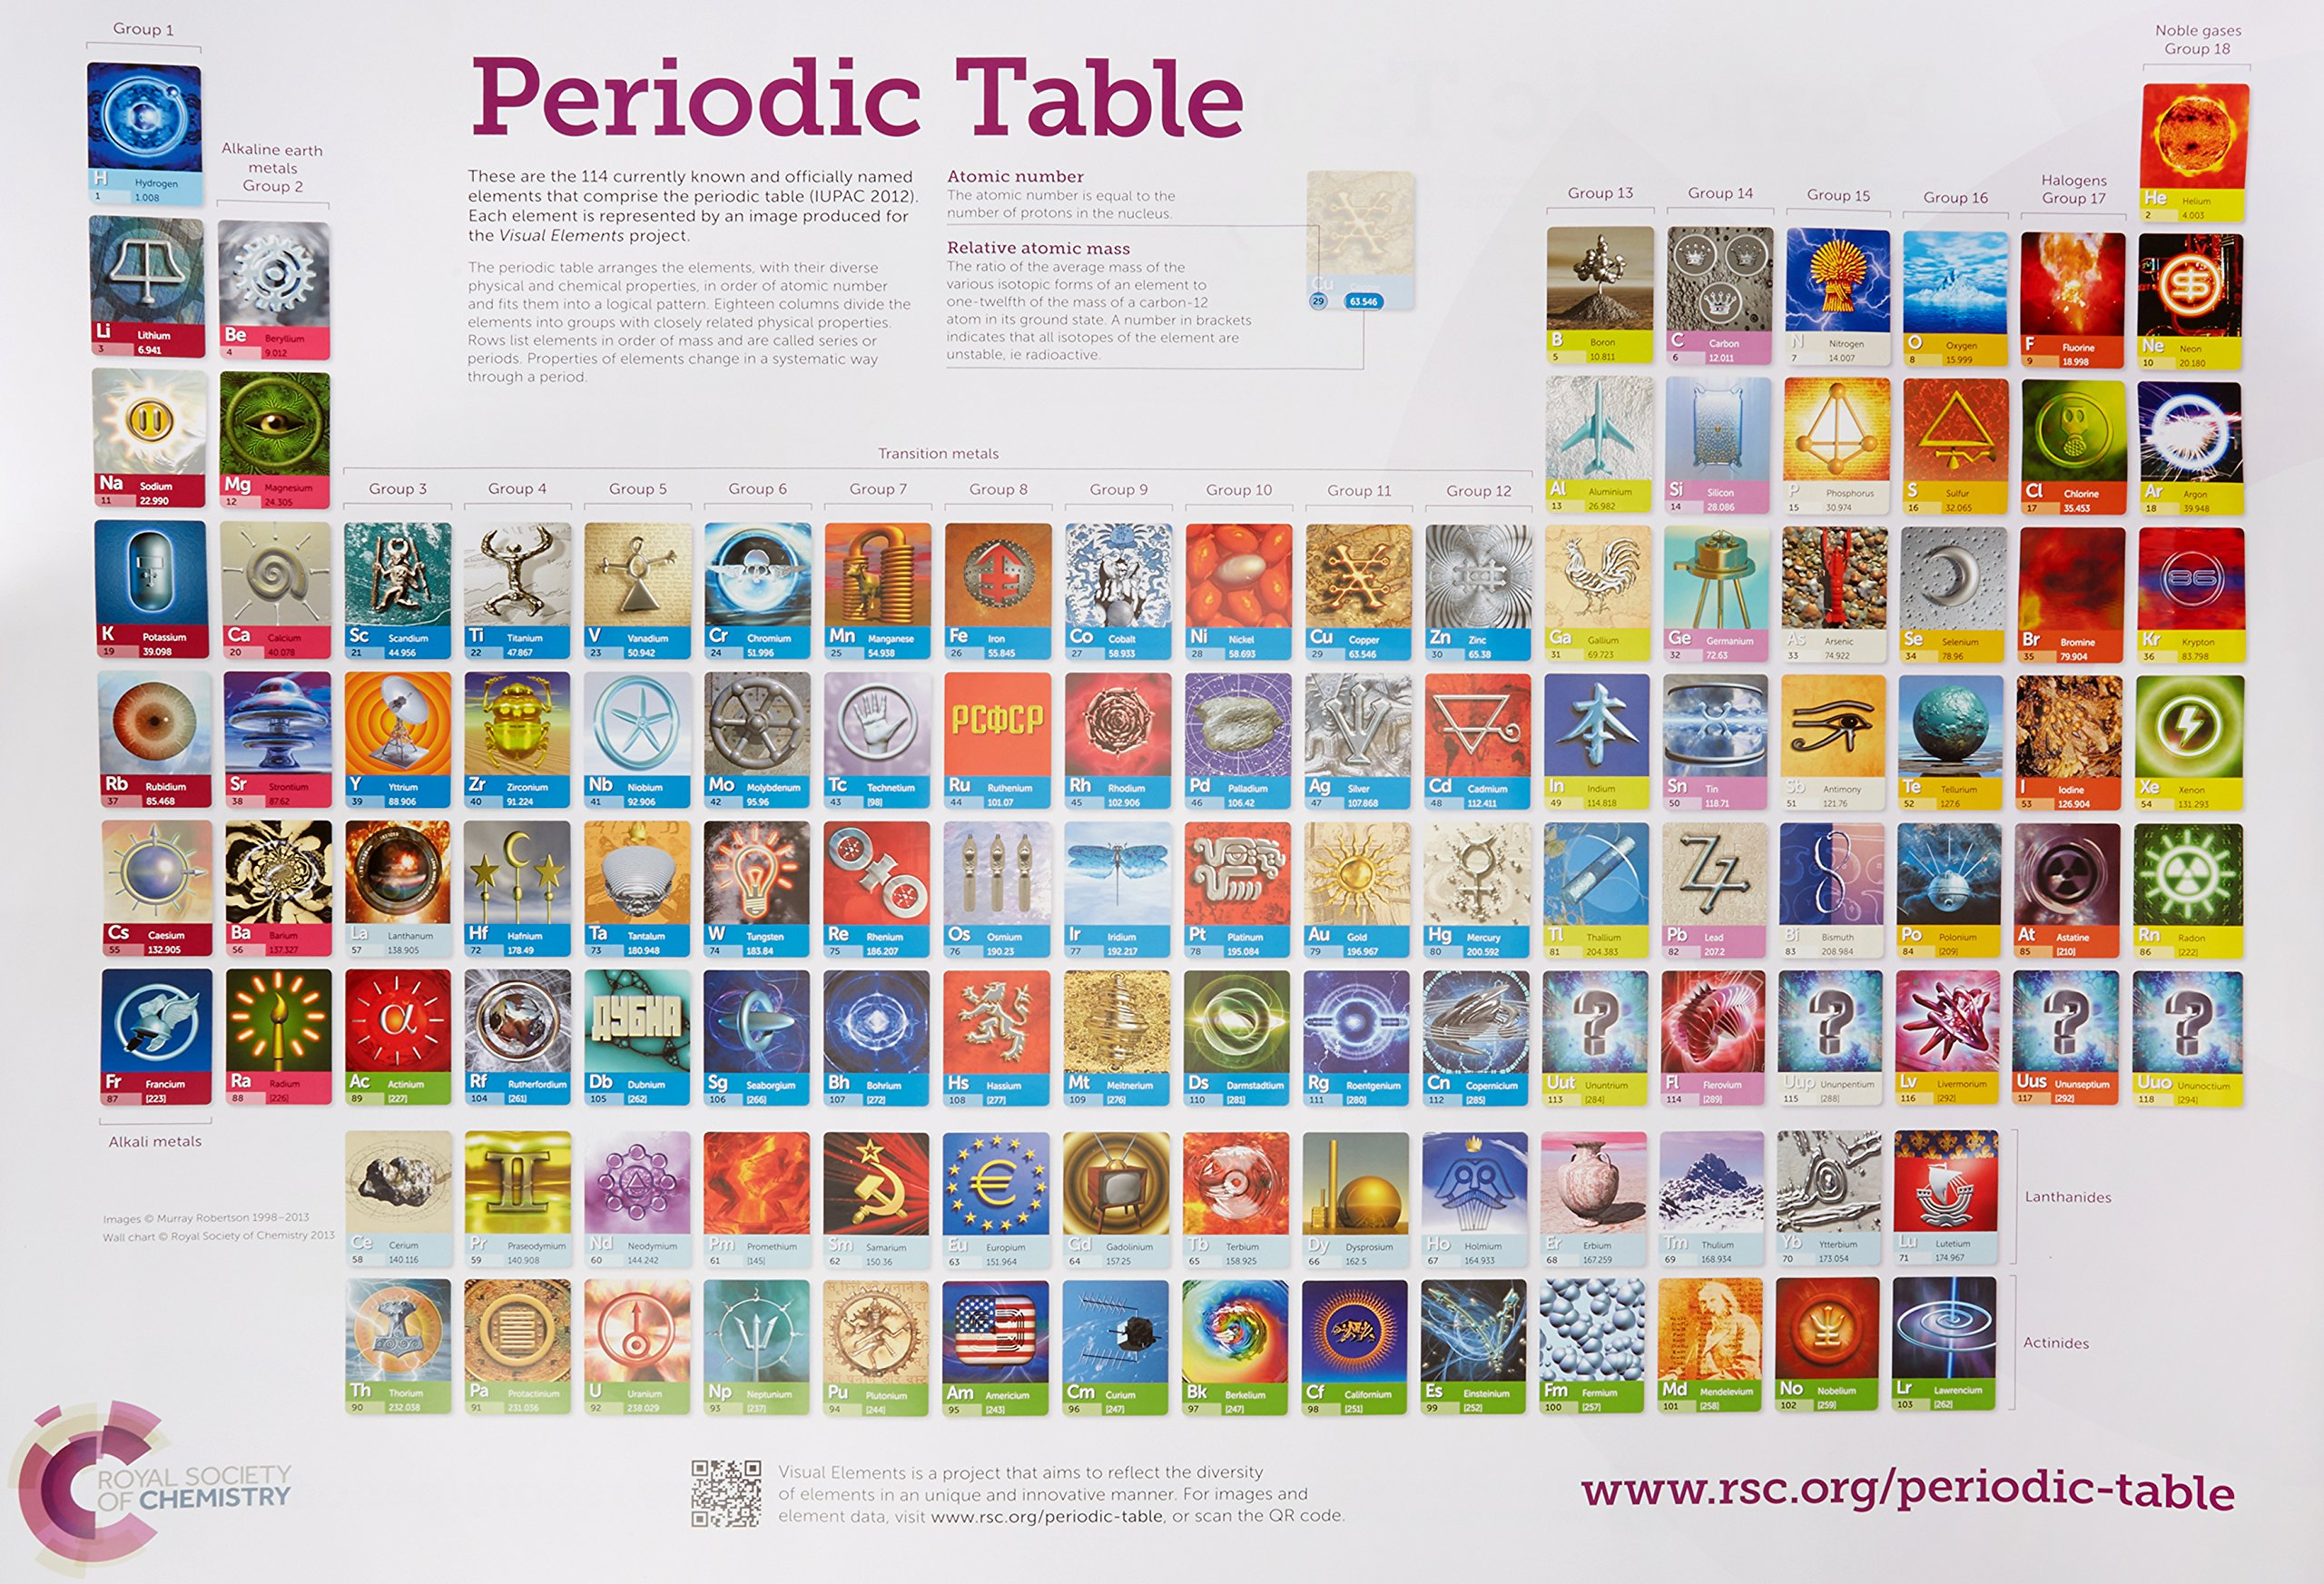 Rsc periodic table wallchart 2a0 double poster pack amazon rsc periodic table wallchart 2a0 double poster pack amazon murray robertson 9781782622147 books gamestrikefo Images